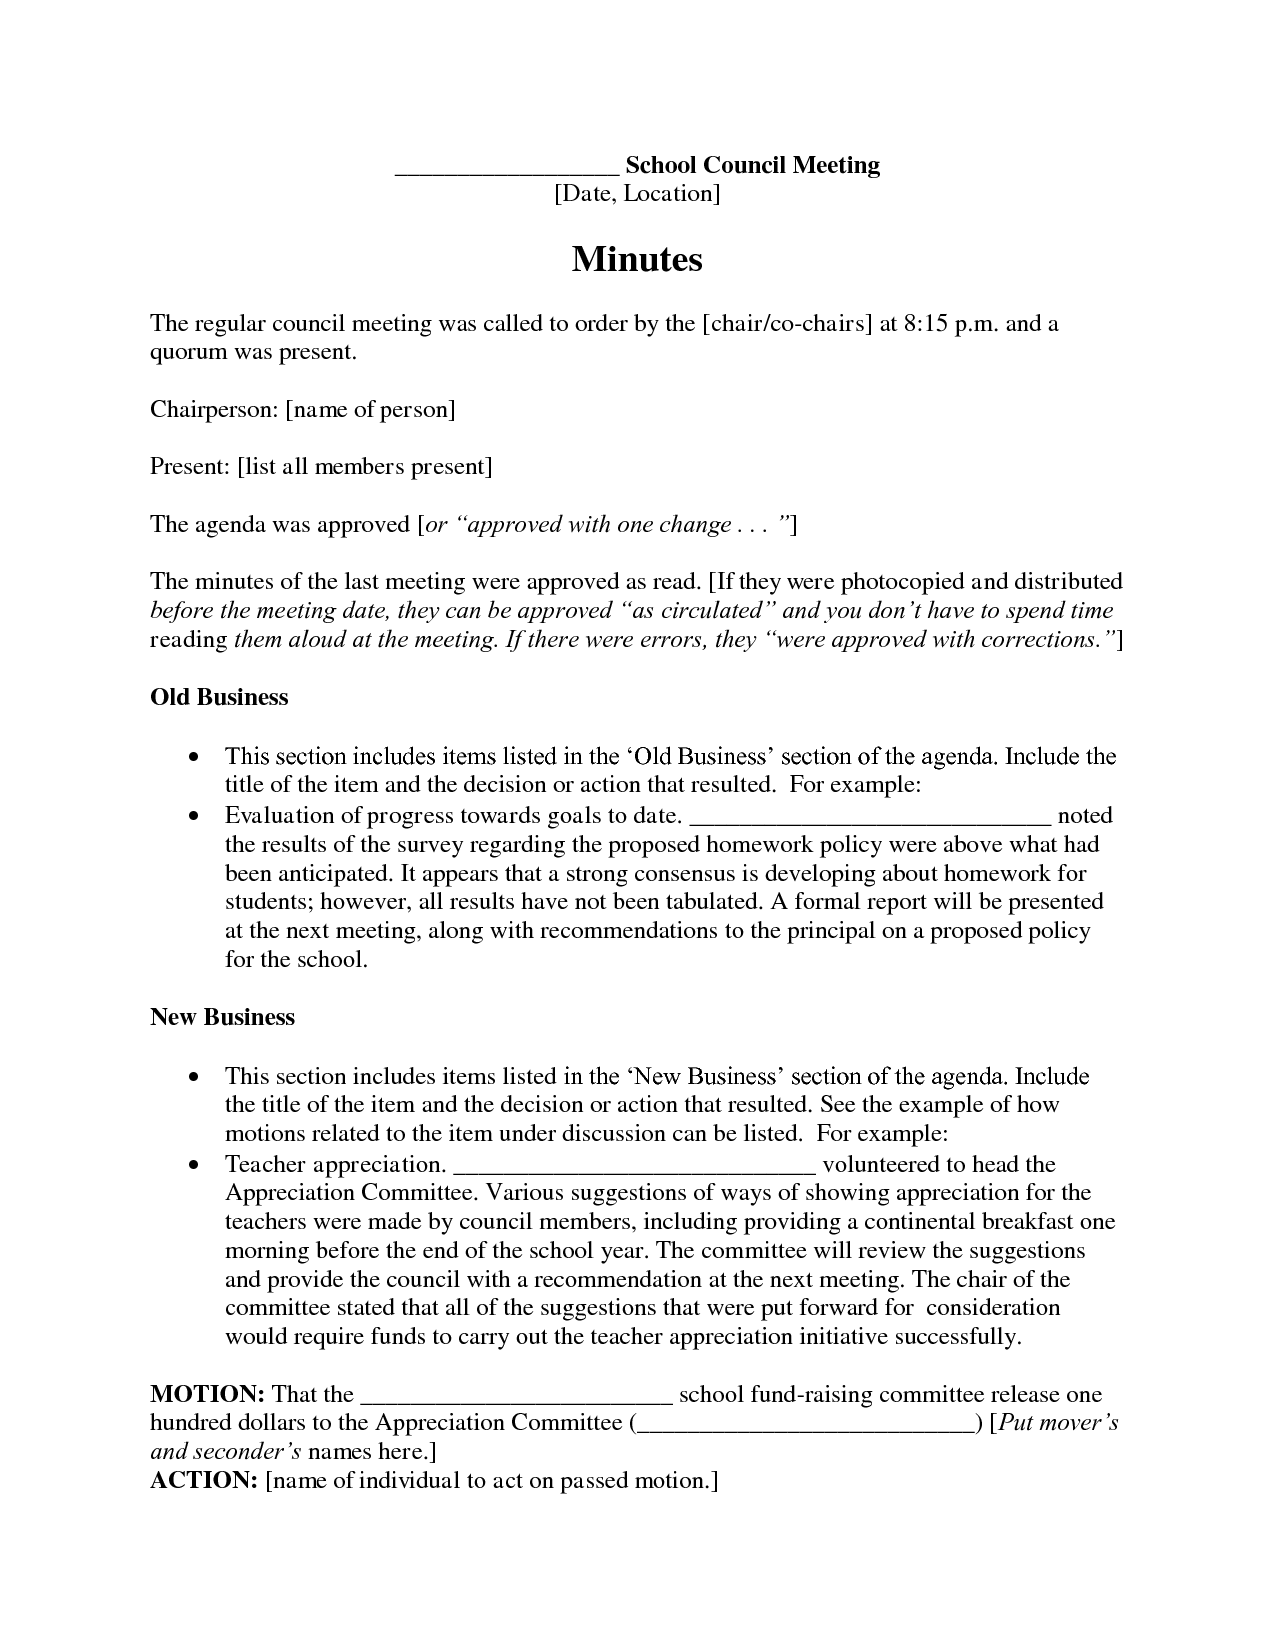 Minutes Of The Meeting Format For School